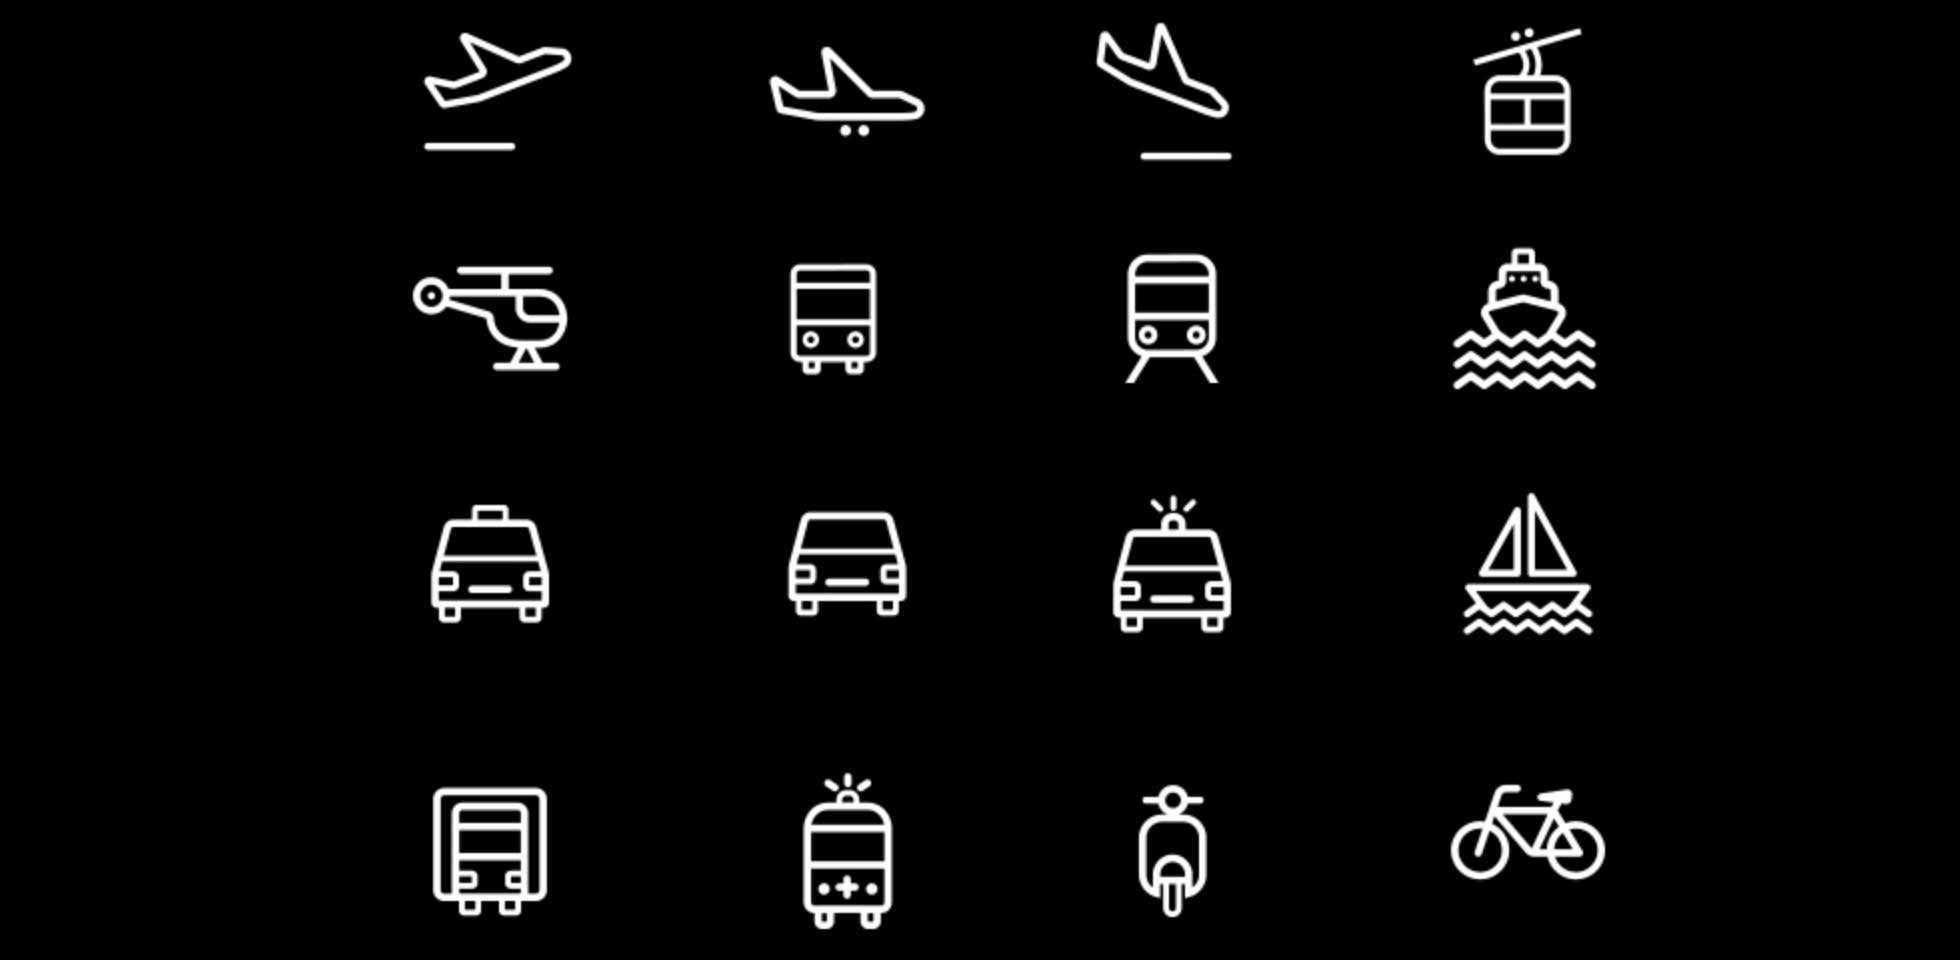 Free Download: Aganè Icons